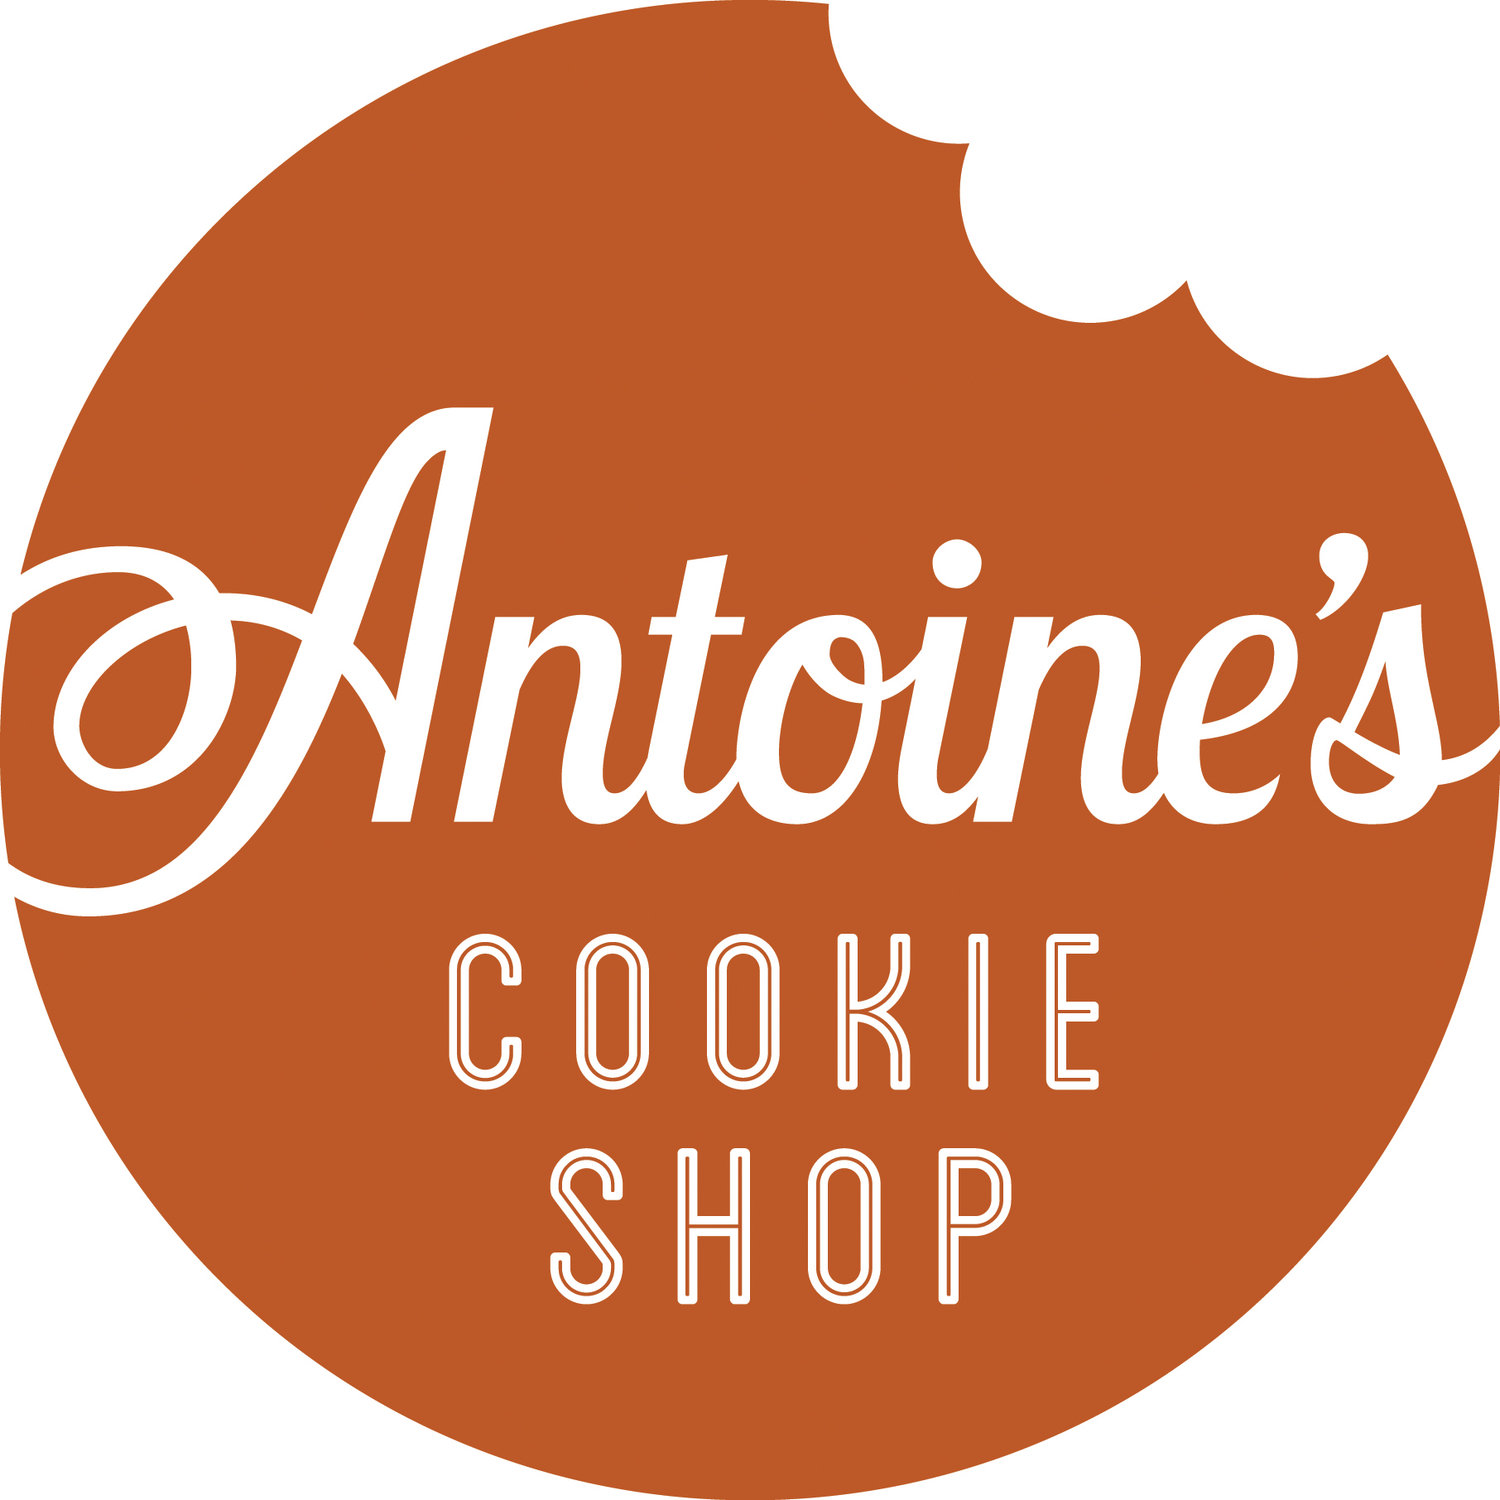 Antoine's Cookie Shop